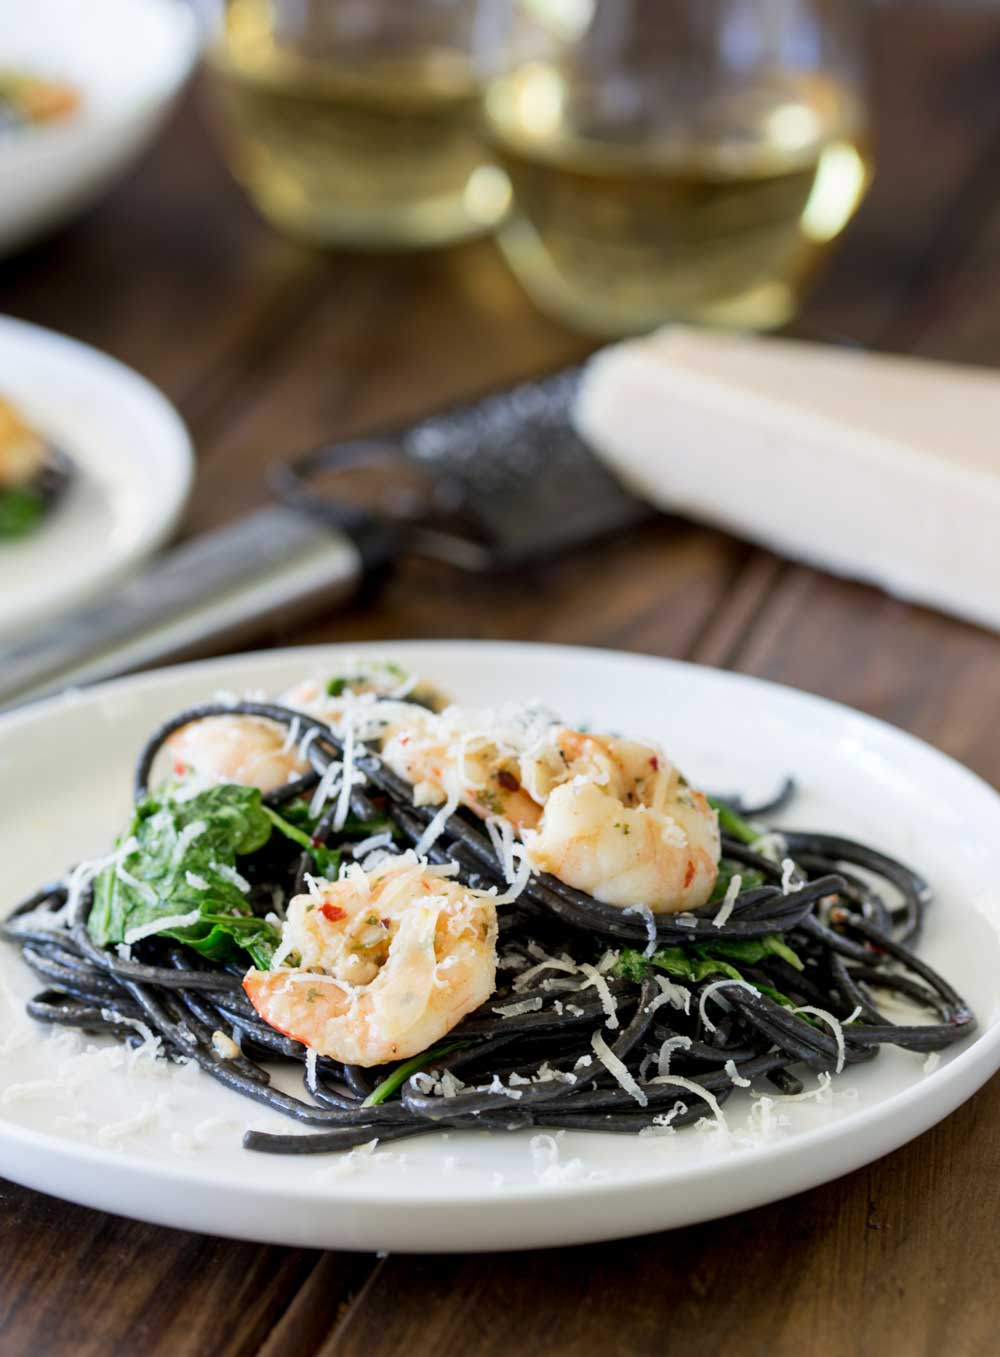 Spaghetti Nero with shrimp and arugula on a white plate with parmesan in the background